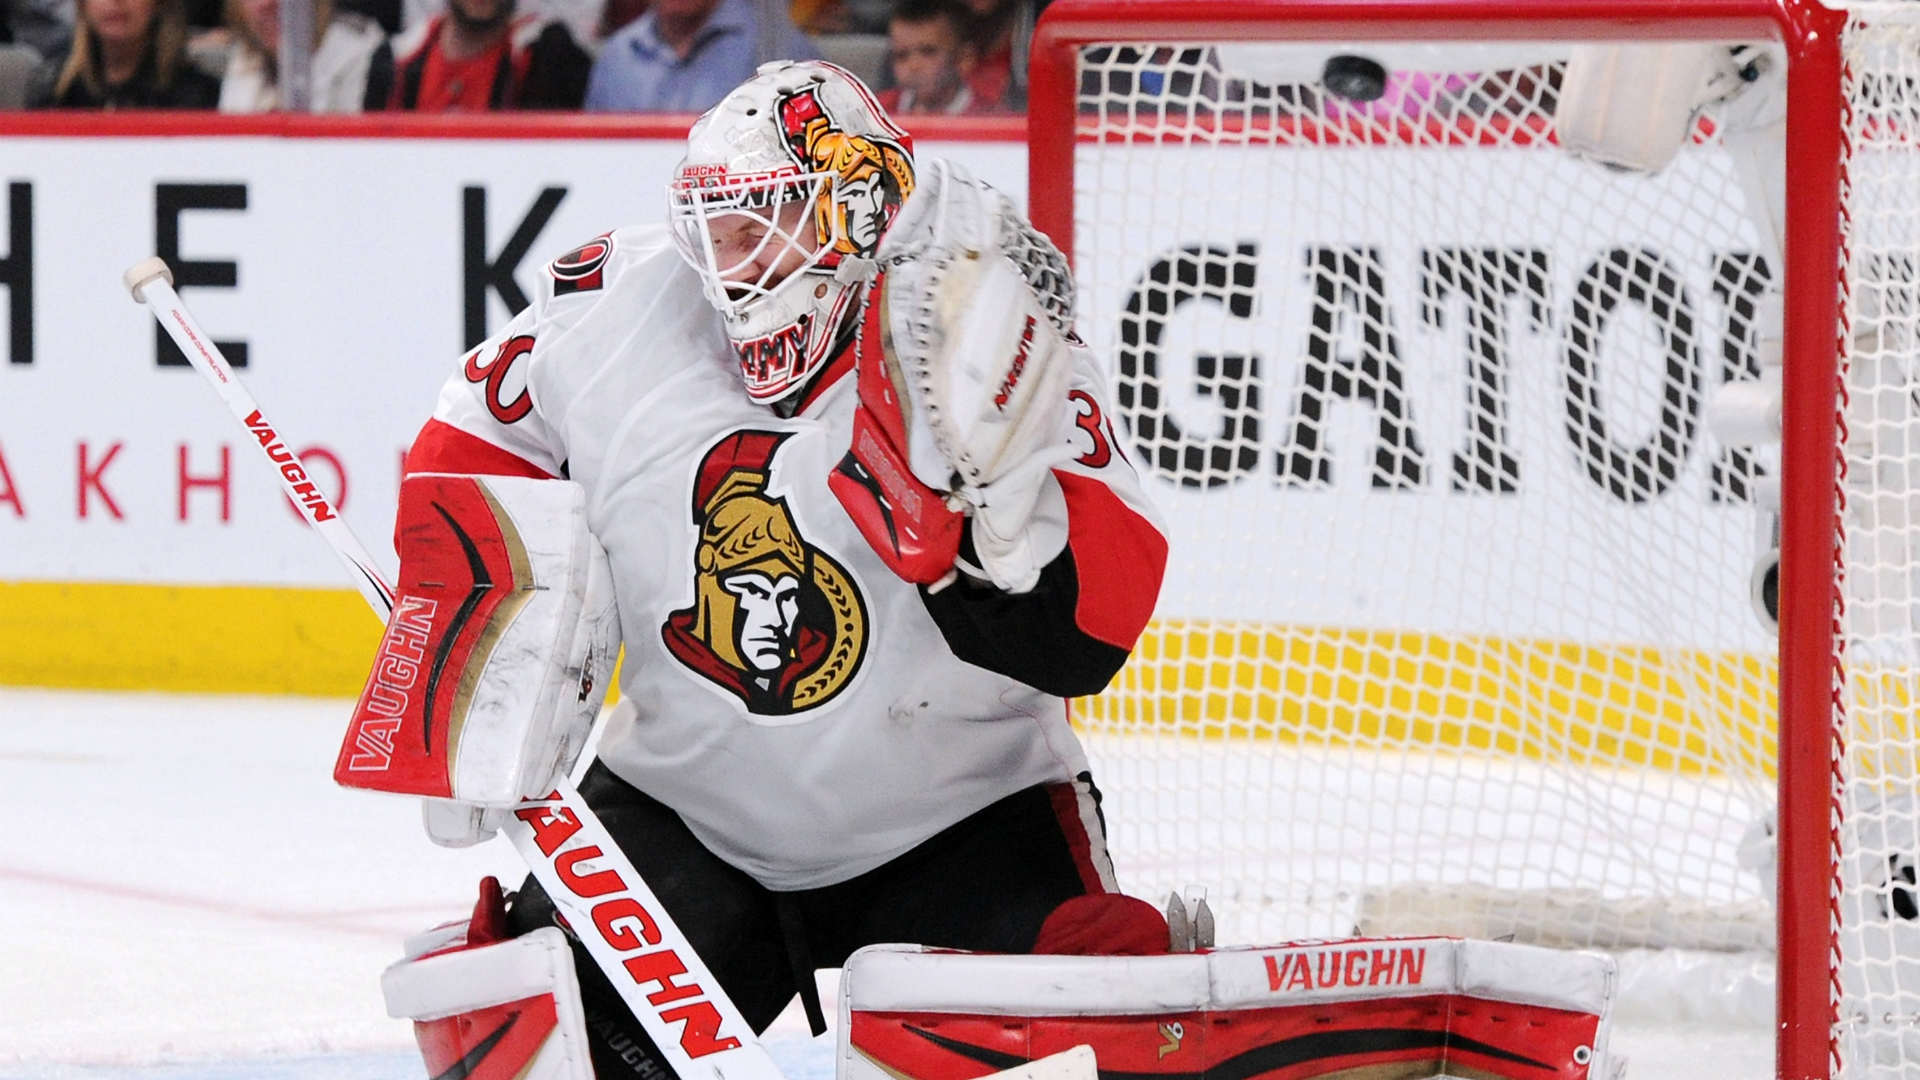 Senators uncertain who to start in net for Game 3